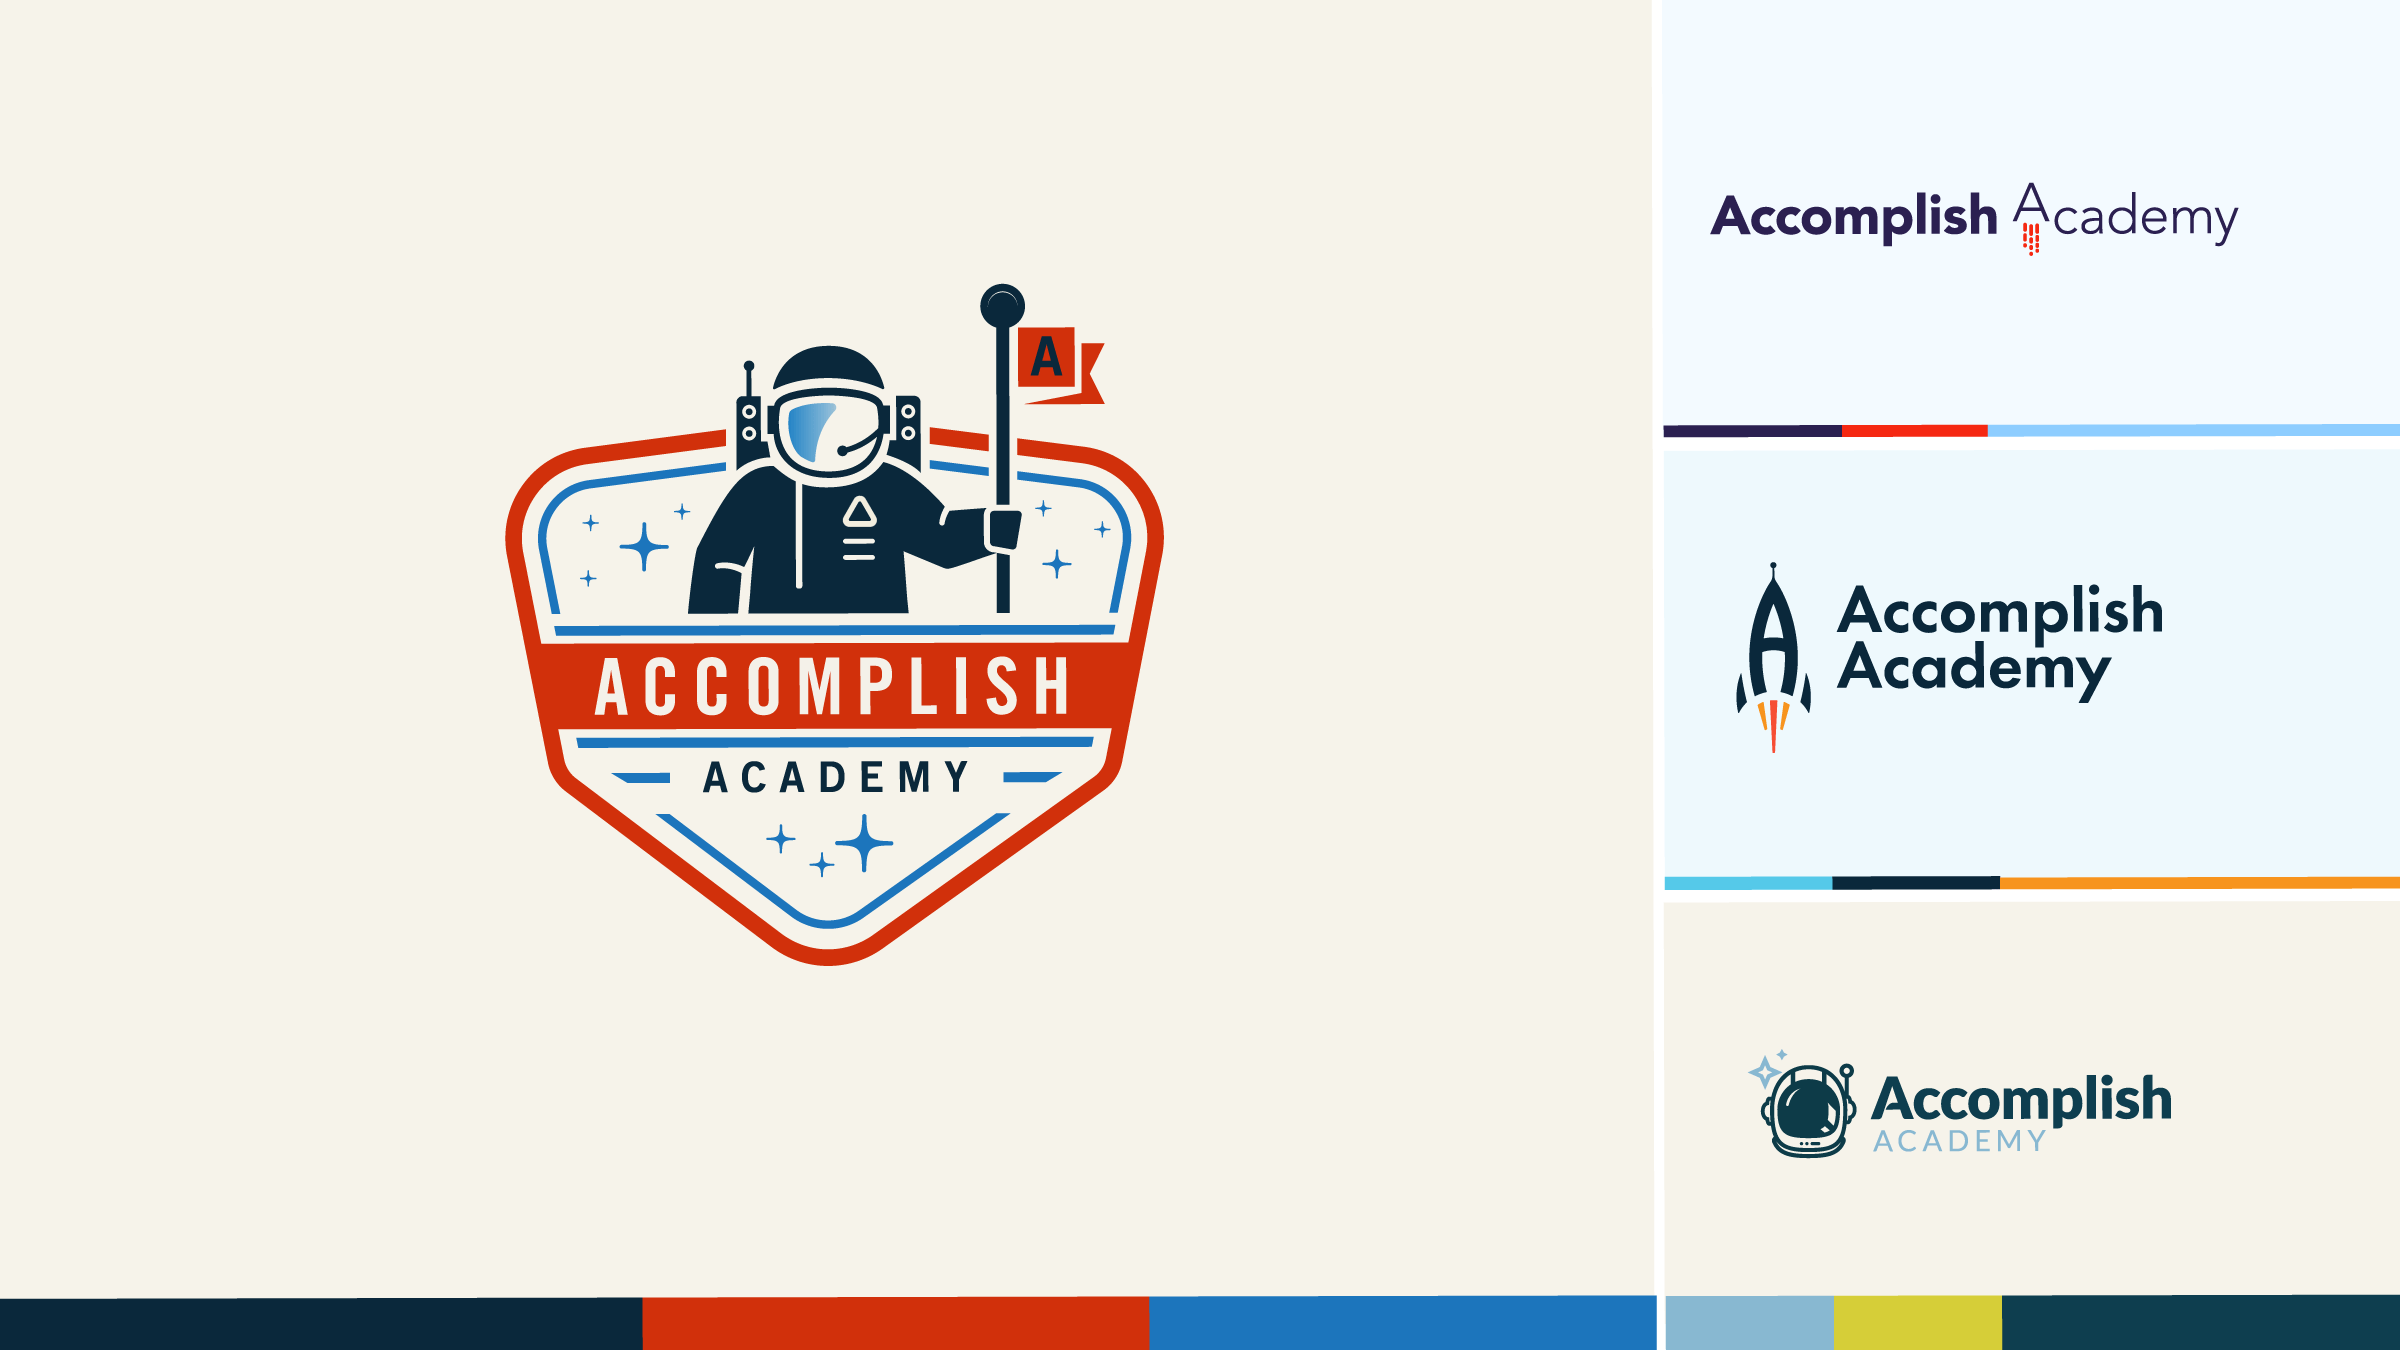 accomplish-academy